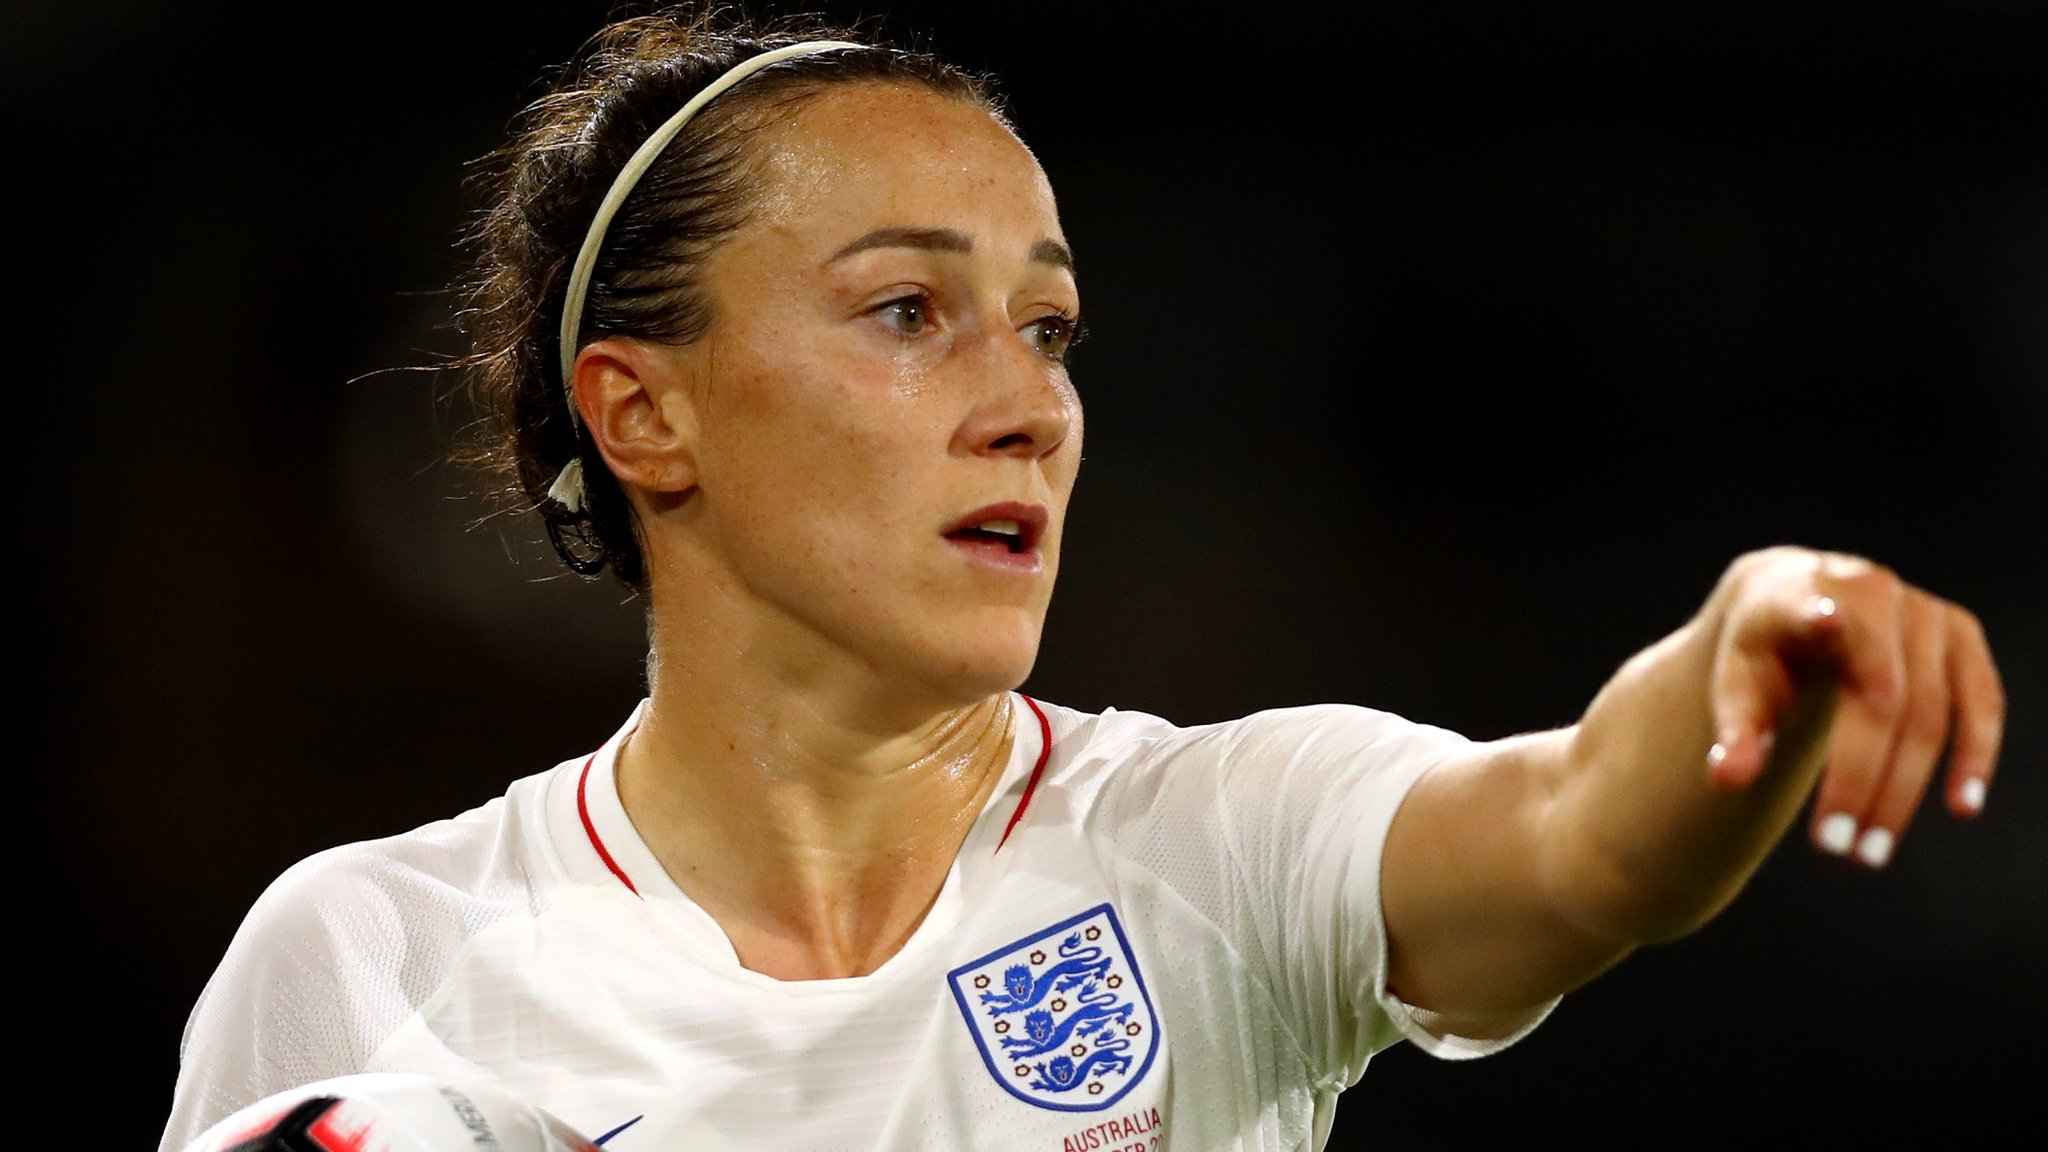 World Beaters: Lucy Bronze on injuries, social anxiety & life in the limelight